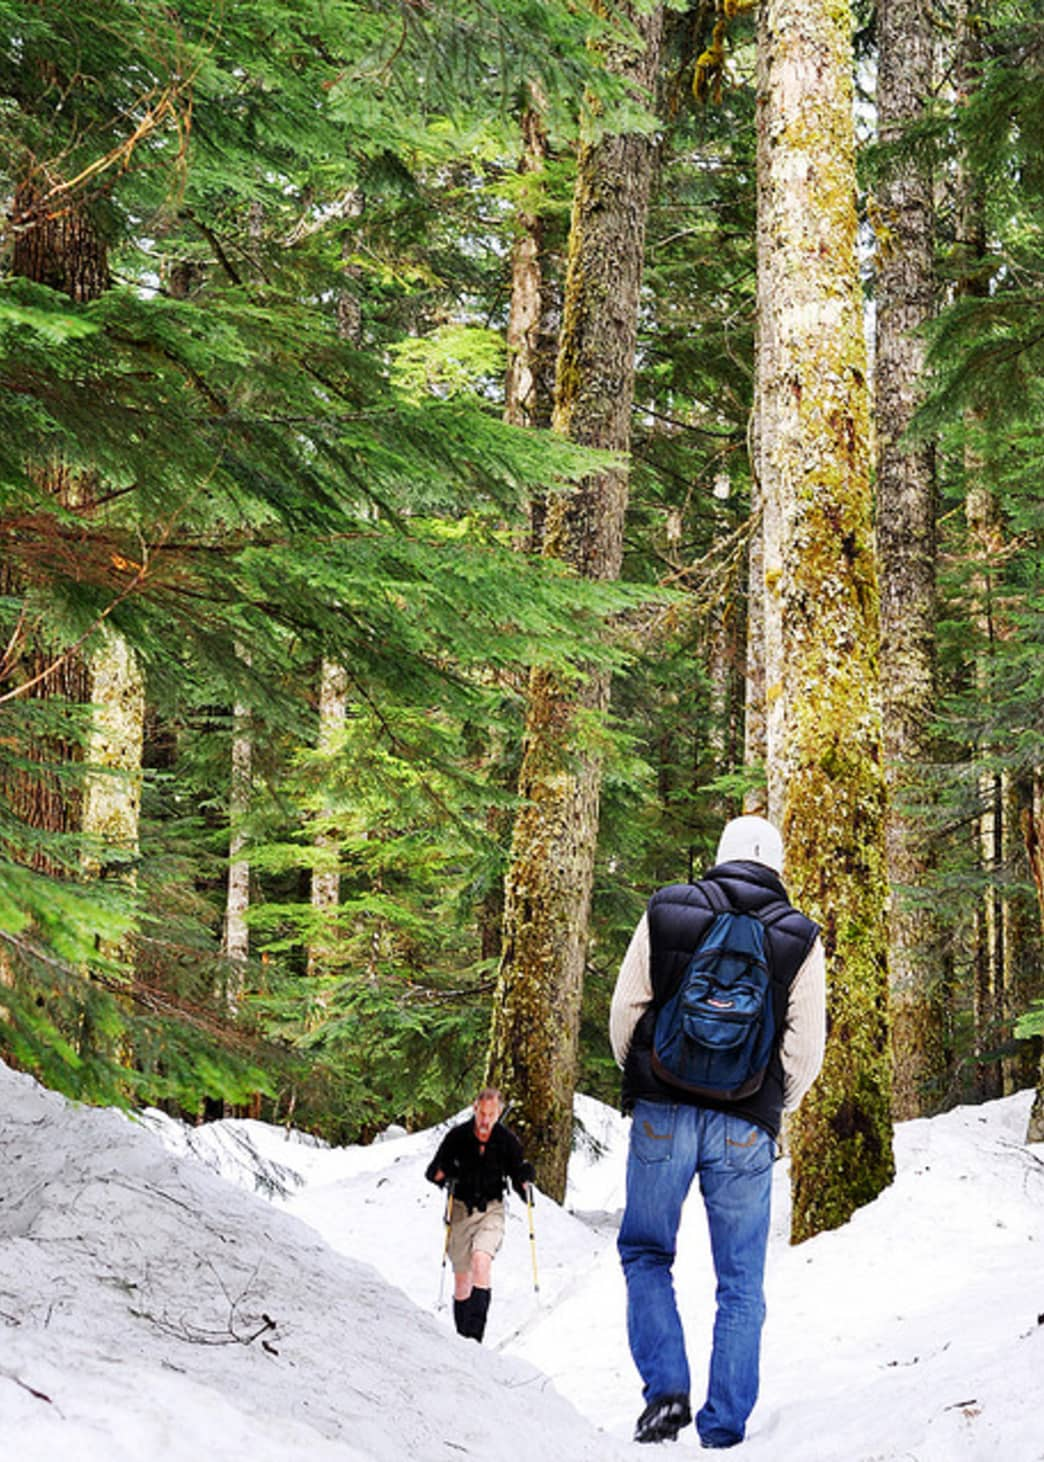 A wintry walk near Denny Creek is great for people and pups.